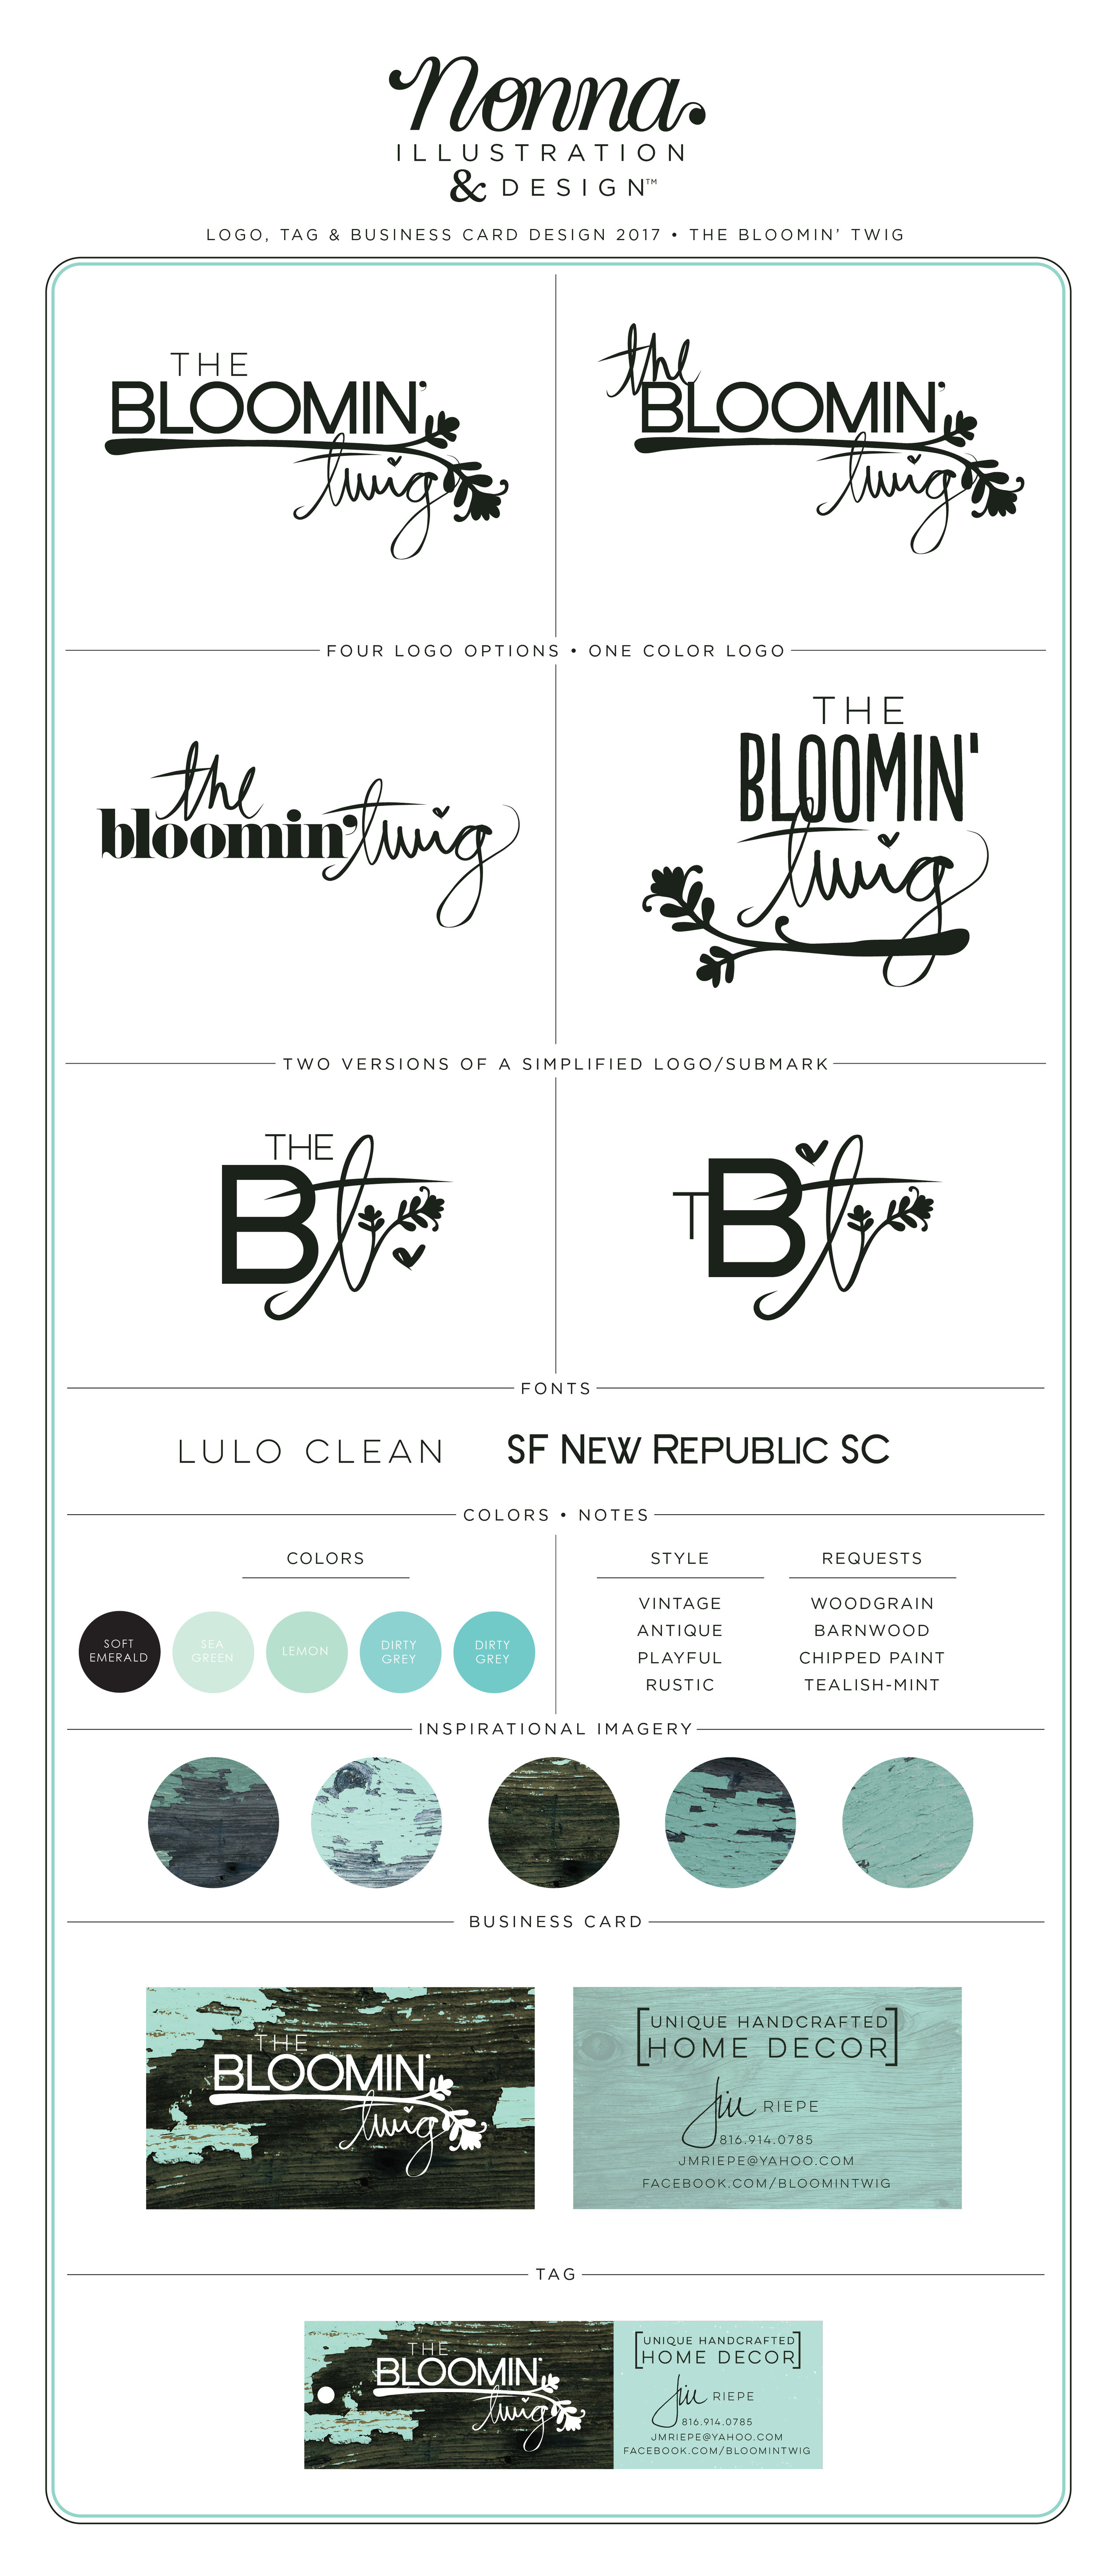 Custom Branding Identity The Bloomin Twig by Nonna Illustration & Design nonnaiandd